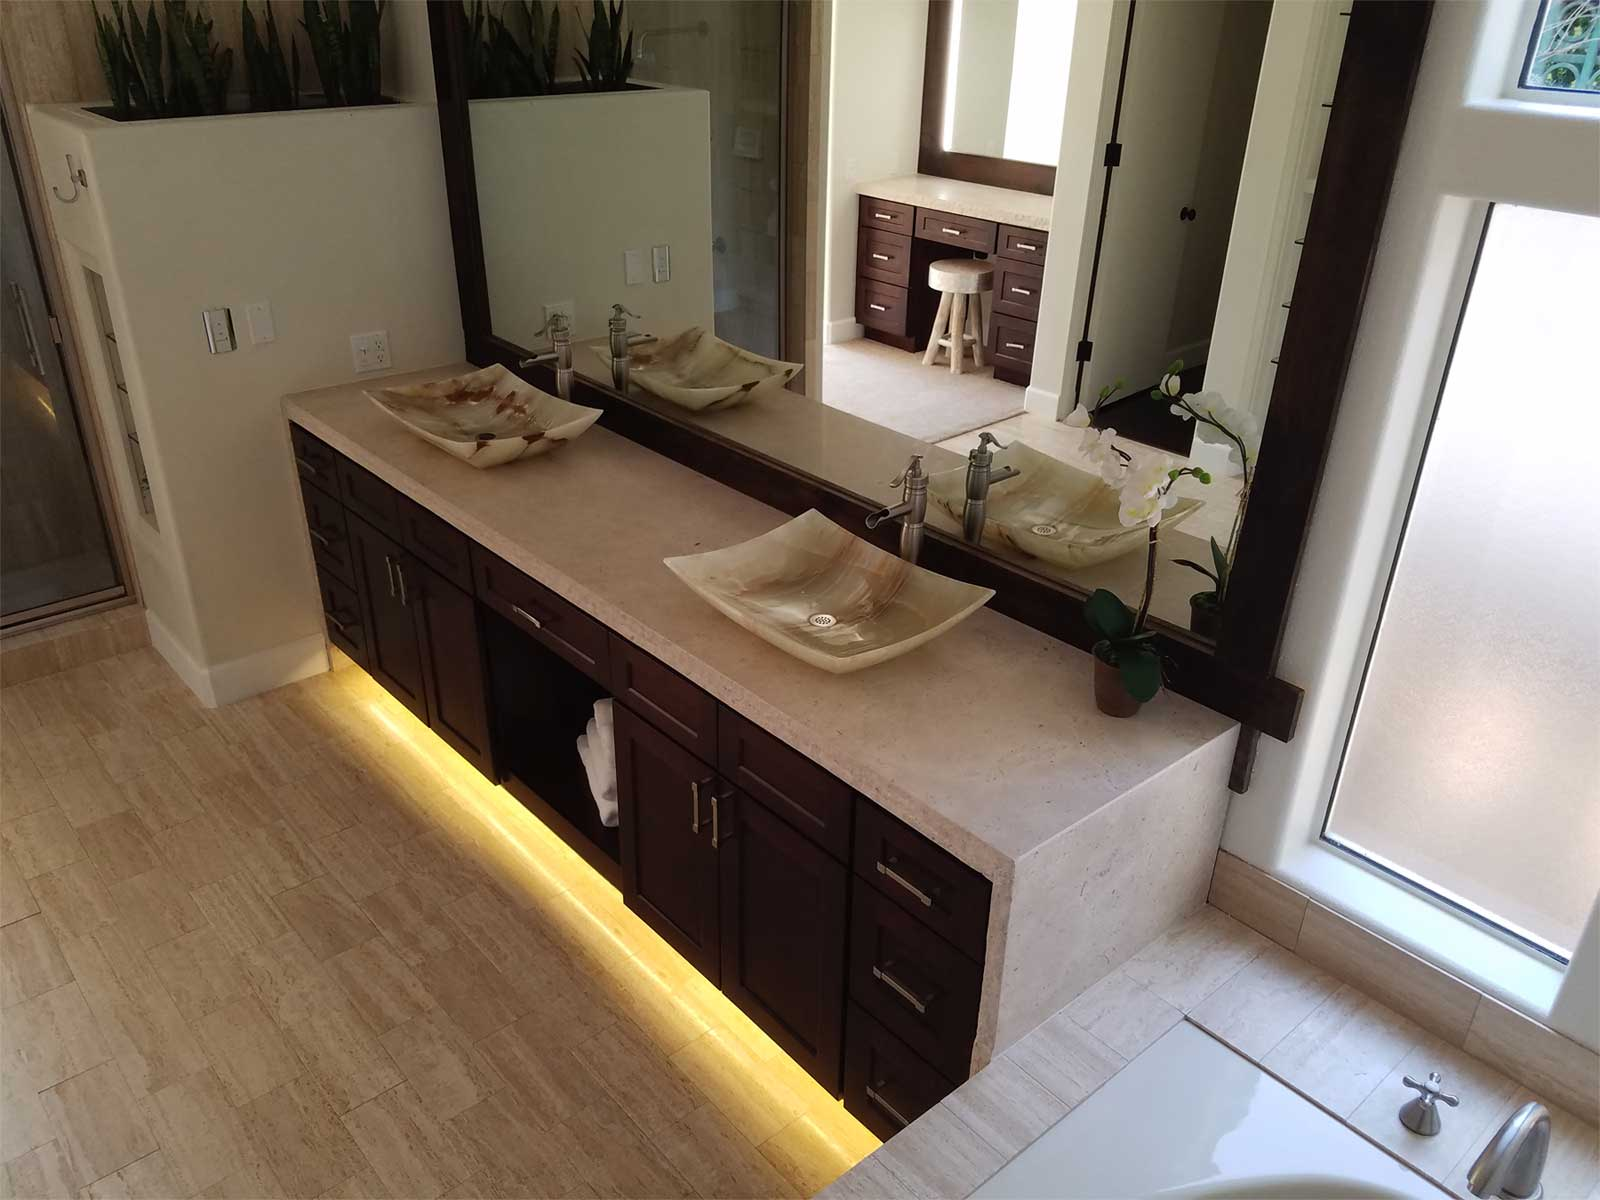 Led Bathroom Cabinets - Veterinariancolleges